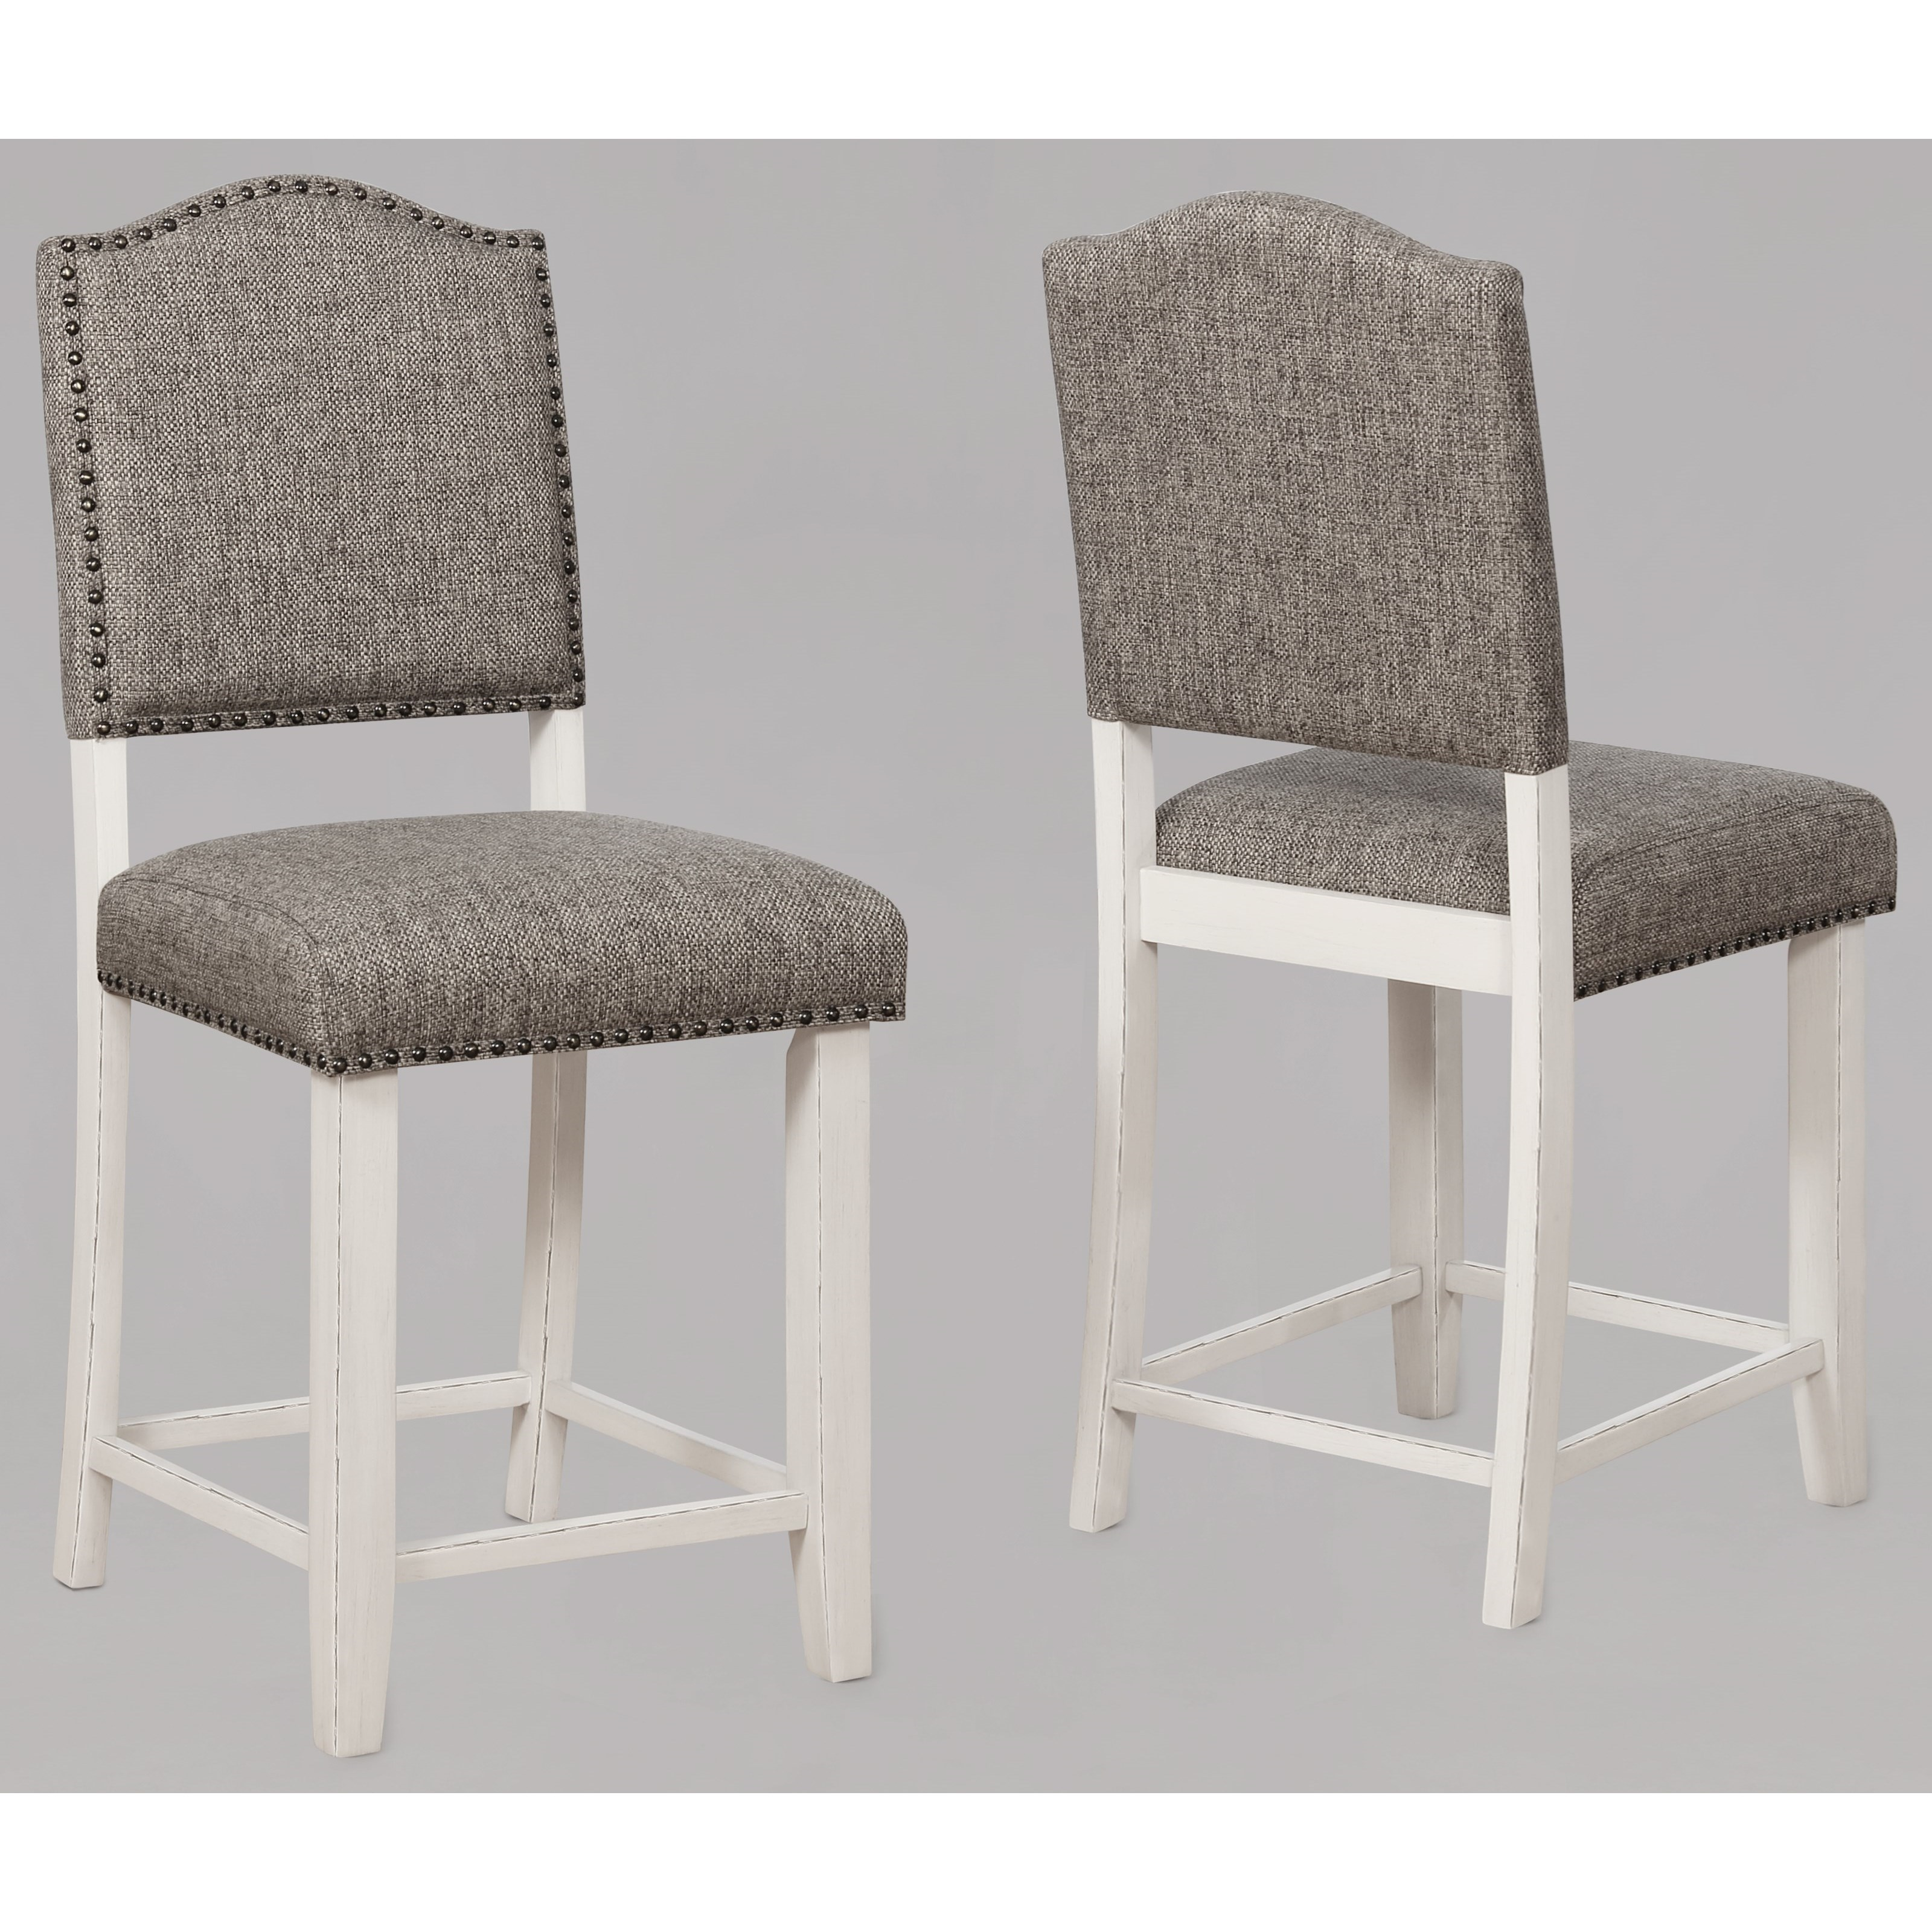 Fabric Counter Height Bar Stools Clover Upholstered Counter Height Chair With Nail Head Trim By Crown Mark At Household Furniture